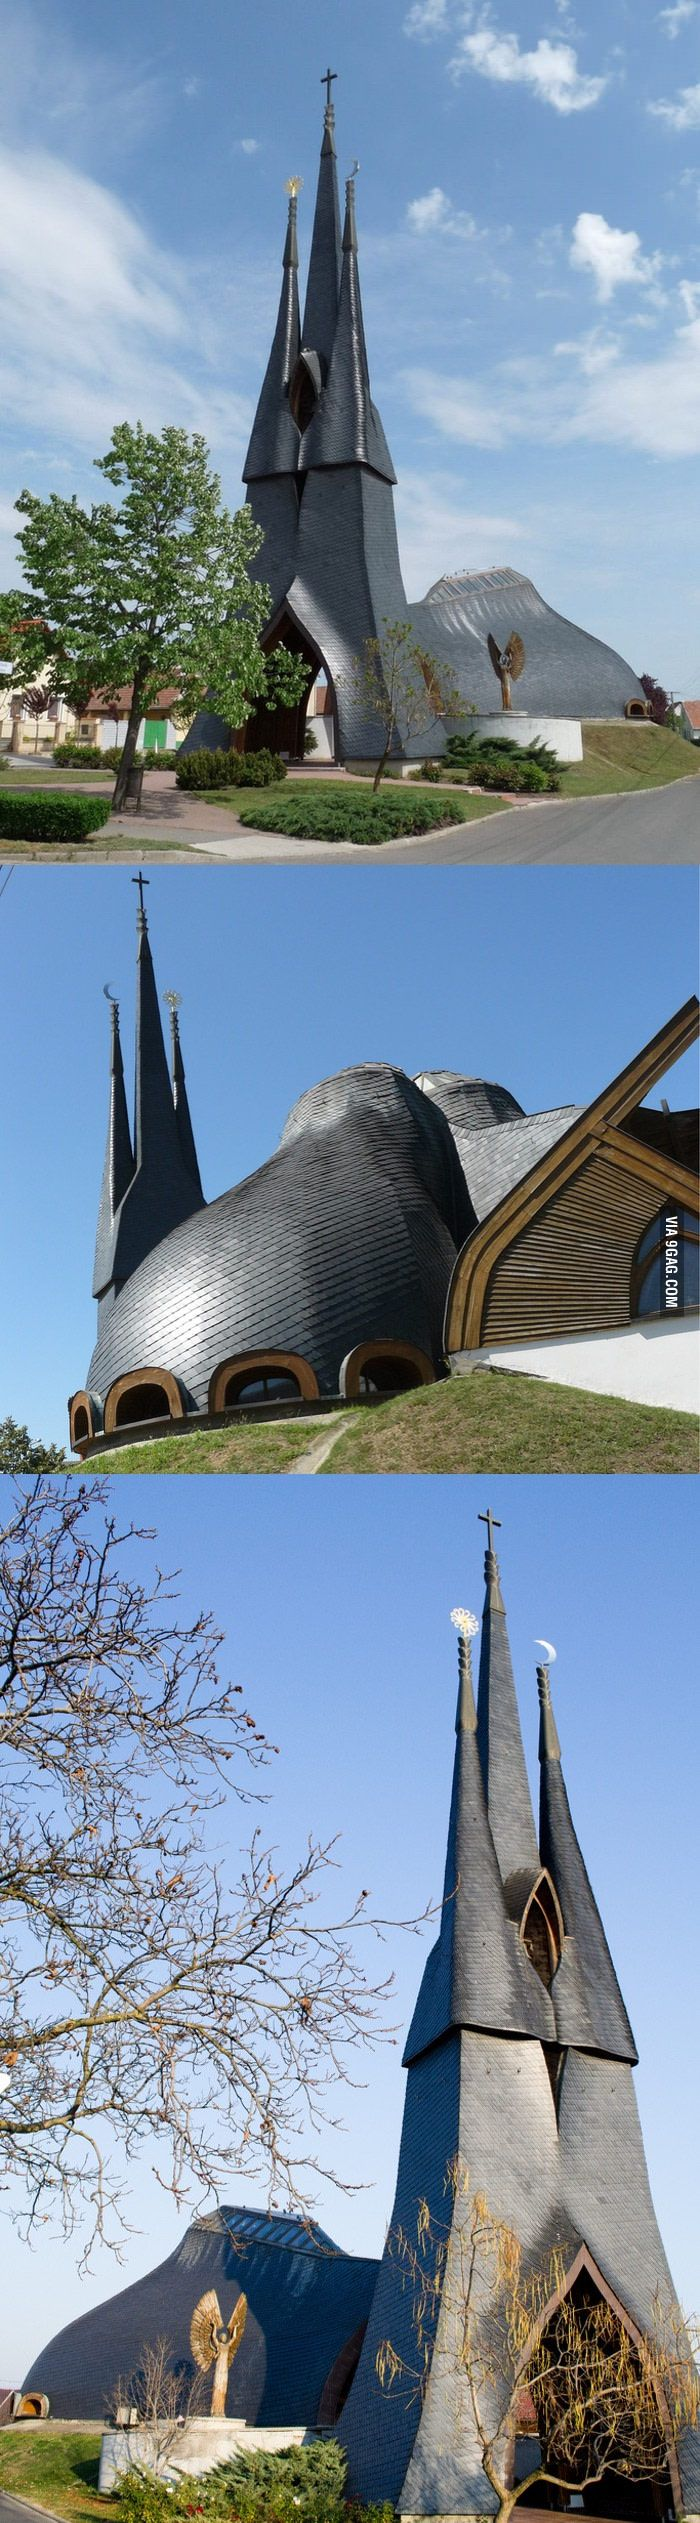 Picture of the local church. Paks/Hungary - 9GAG